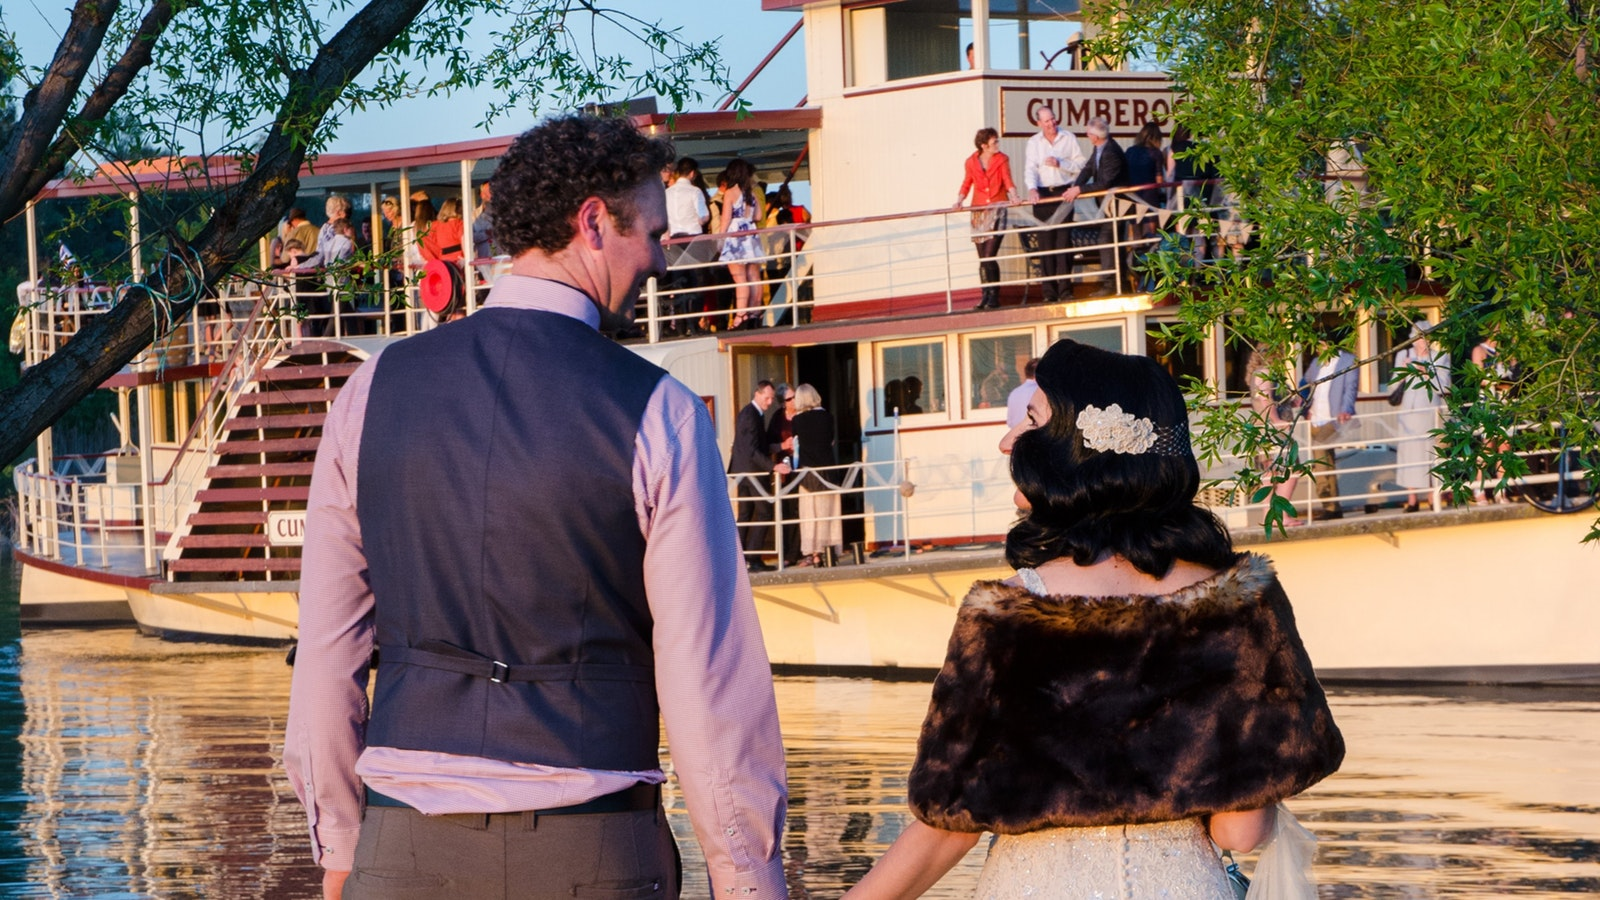 Weddings on the Cumberoona